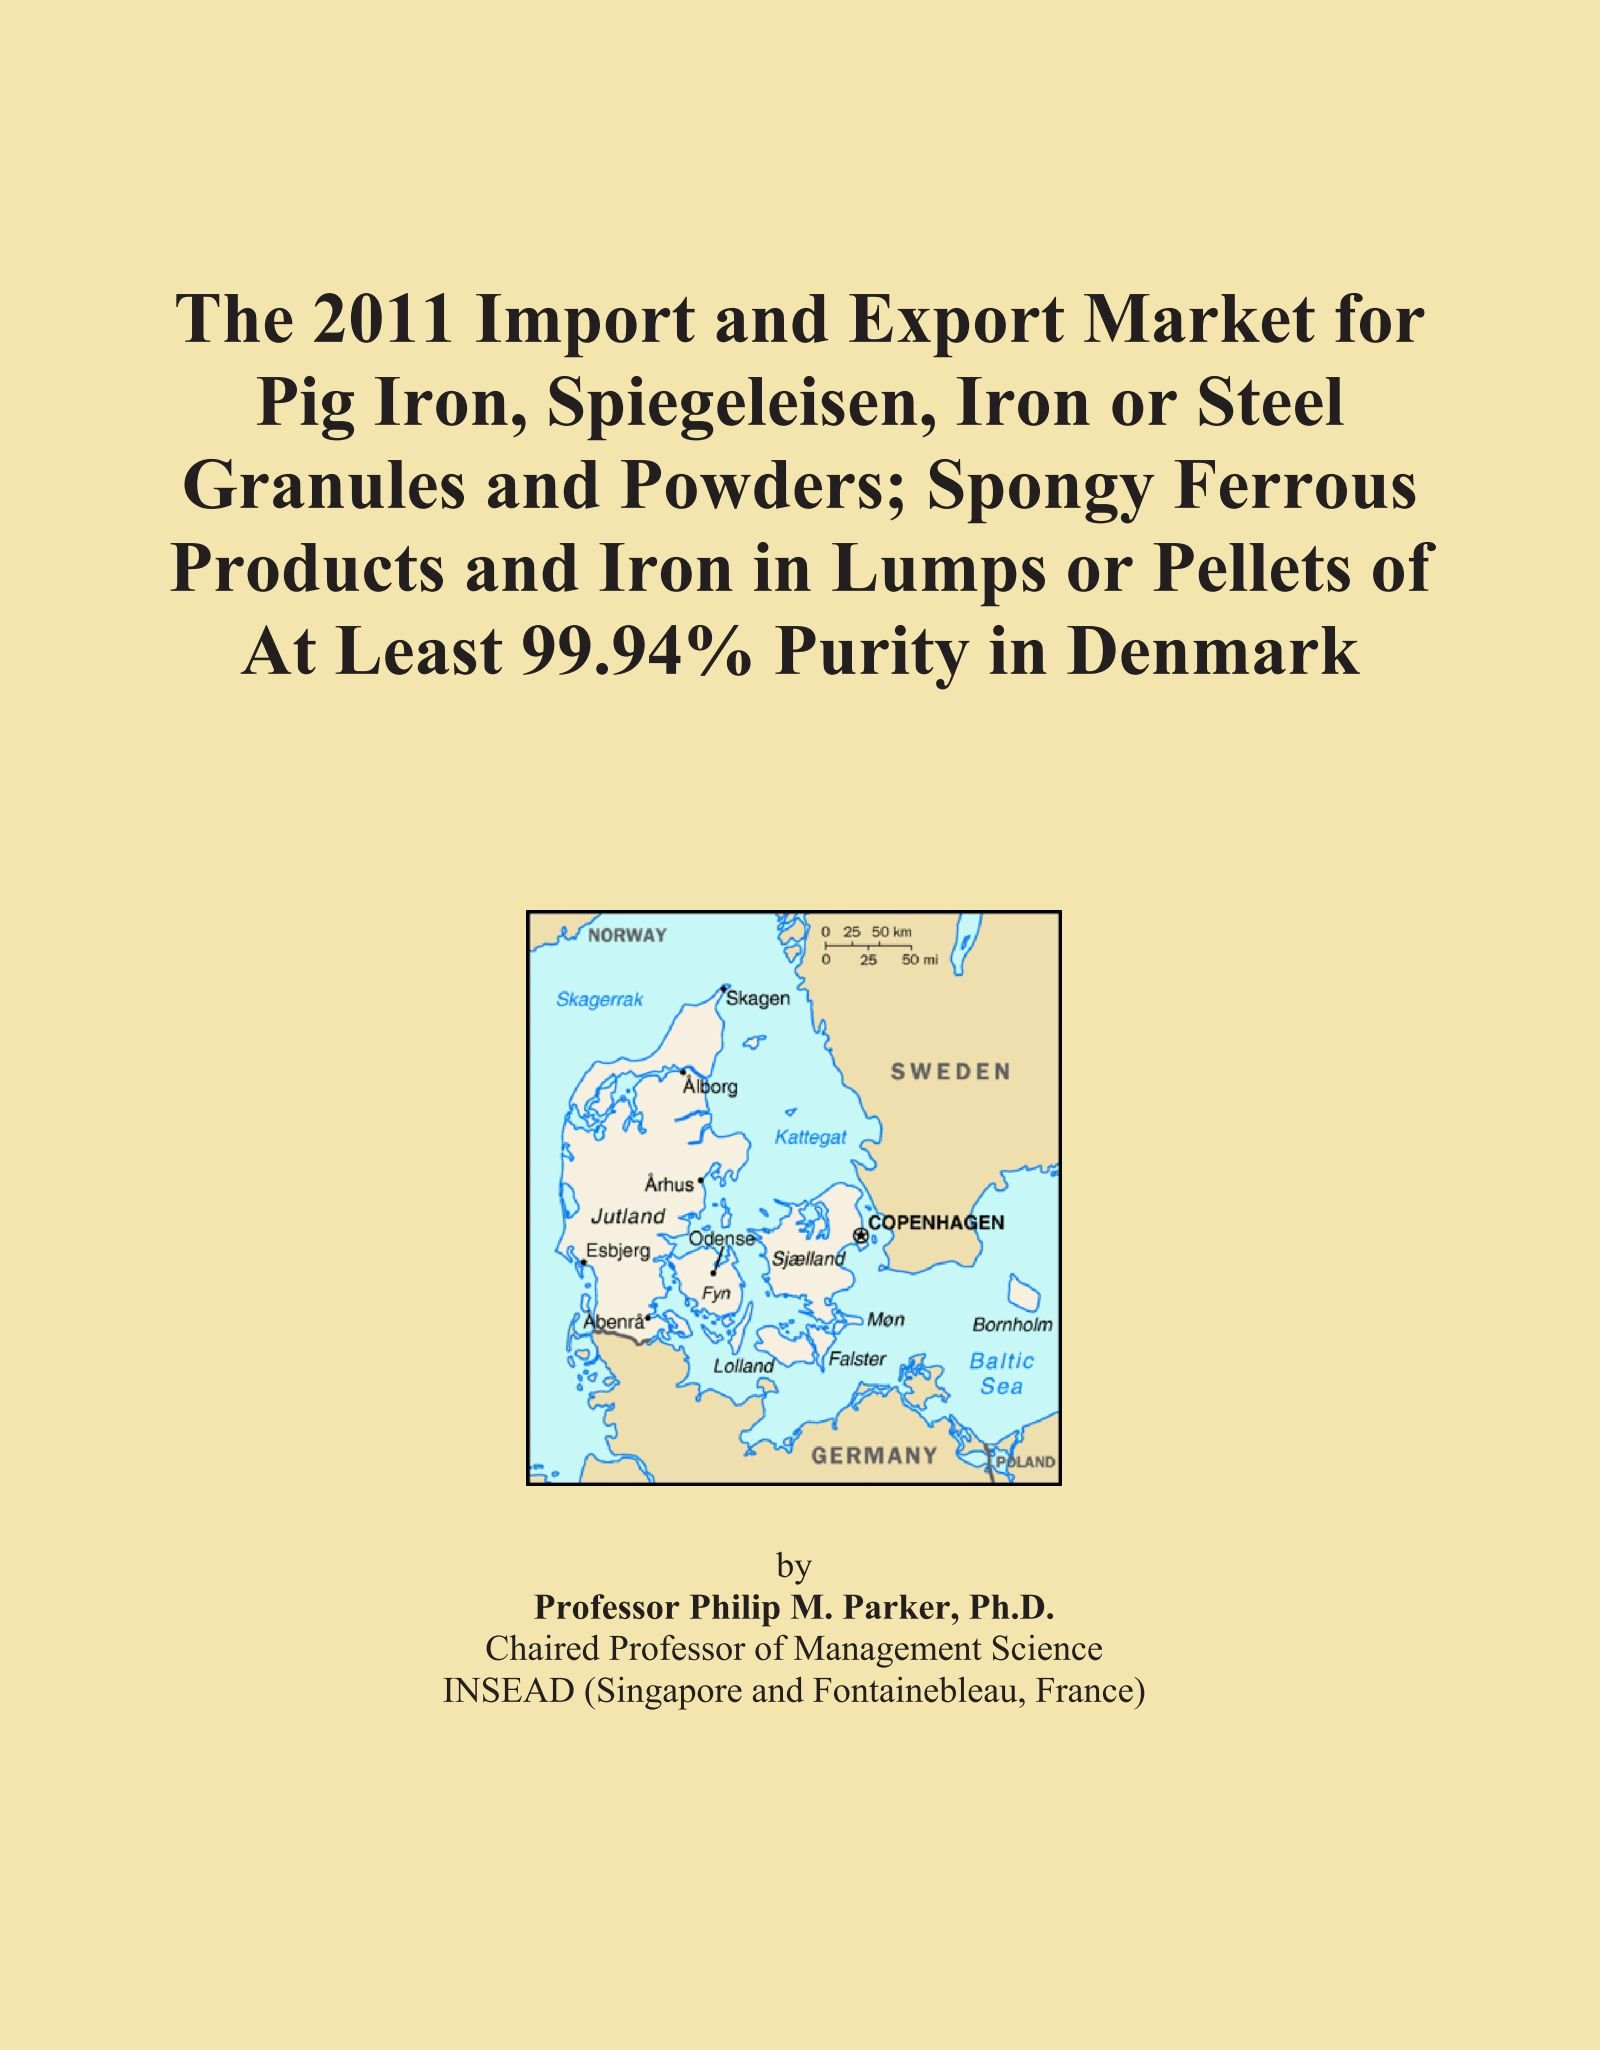 Download The 2011 Import and Export Market for Pig Iron, Spiegeleisen, Iron or Steel Granules and Powders; Spongy Ferrous Products and Iron in Lumps or Pellets of At Least 99.94% Purity in Denmark PDF